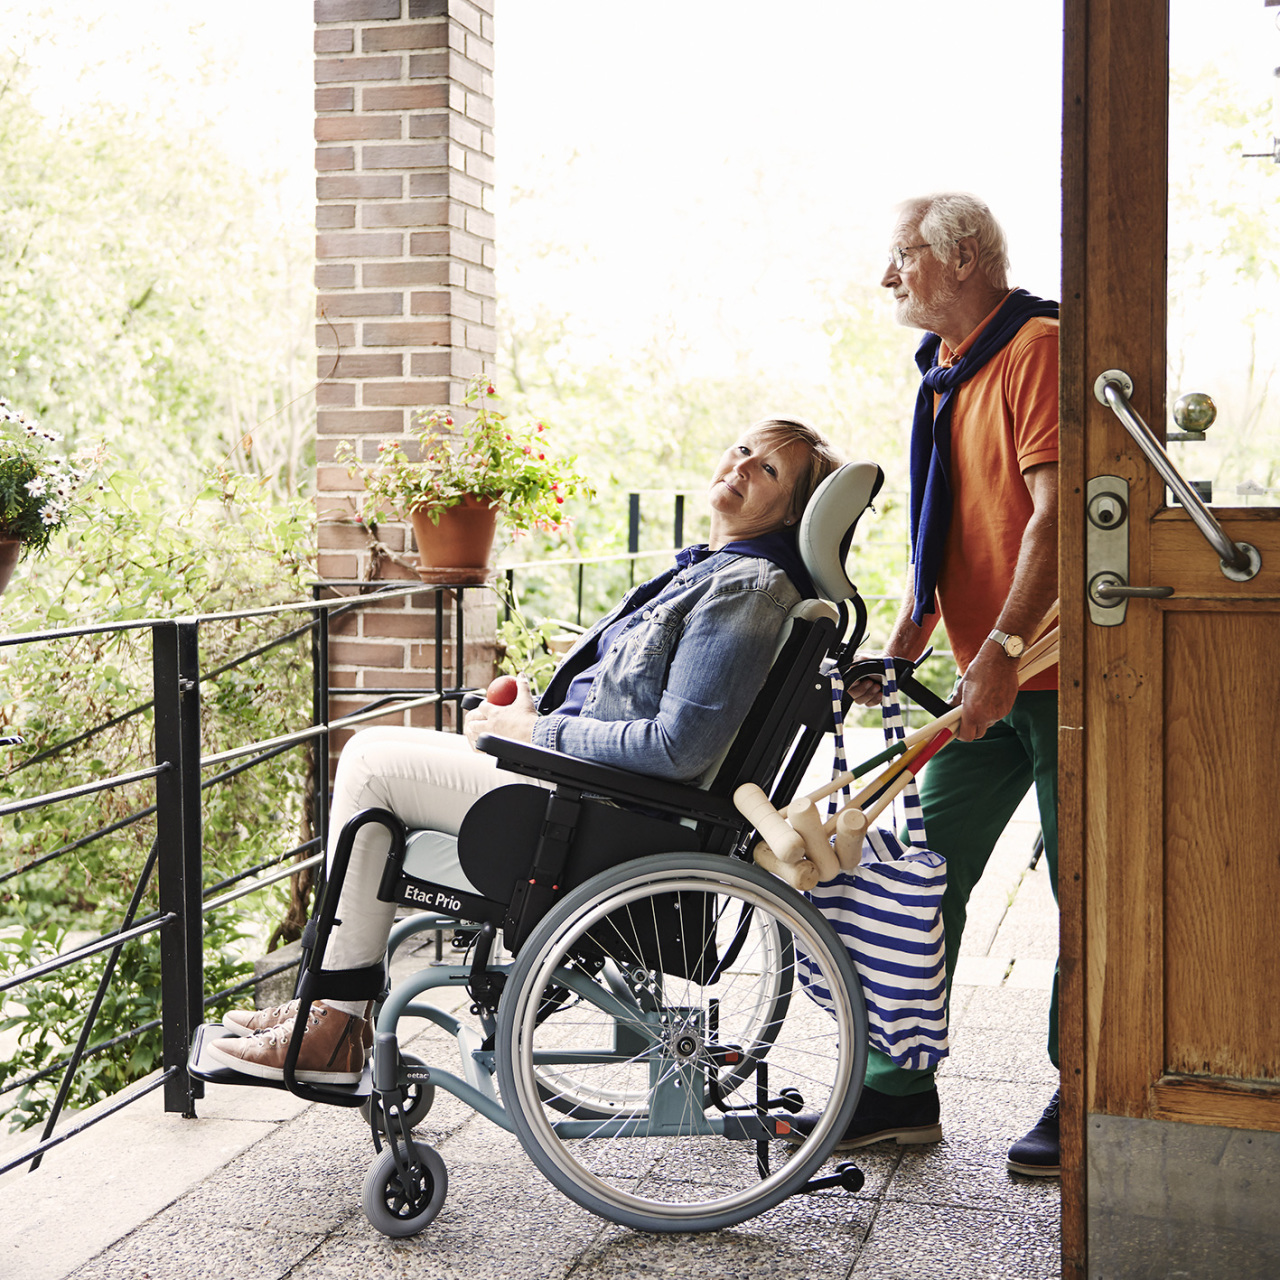 Etac Prio wheelchair is easy to push and turn thanks to its neat design.